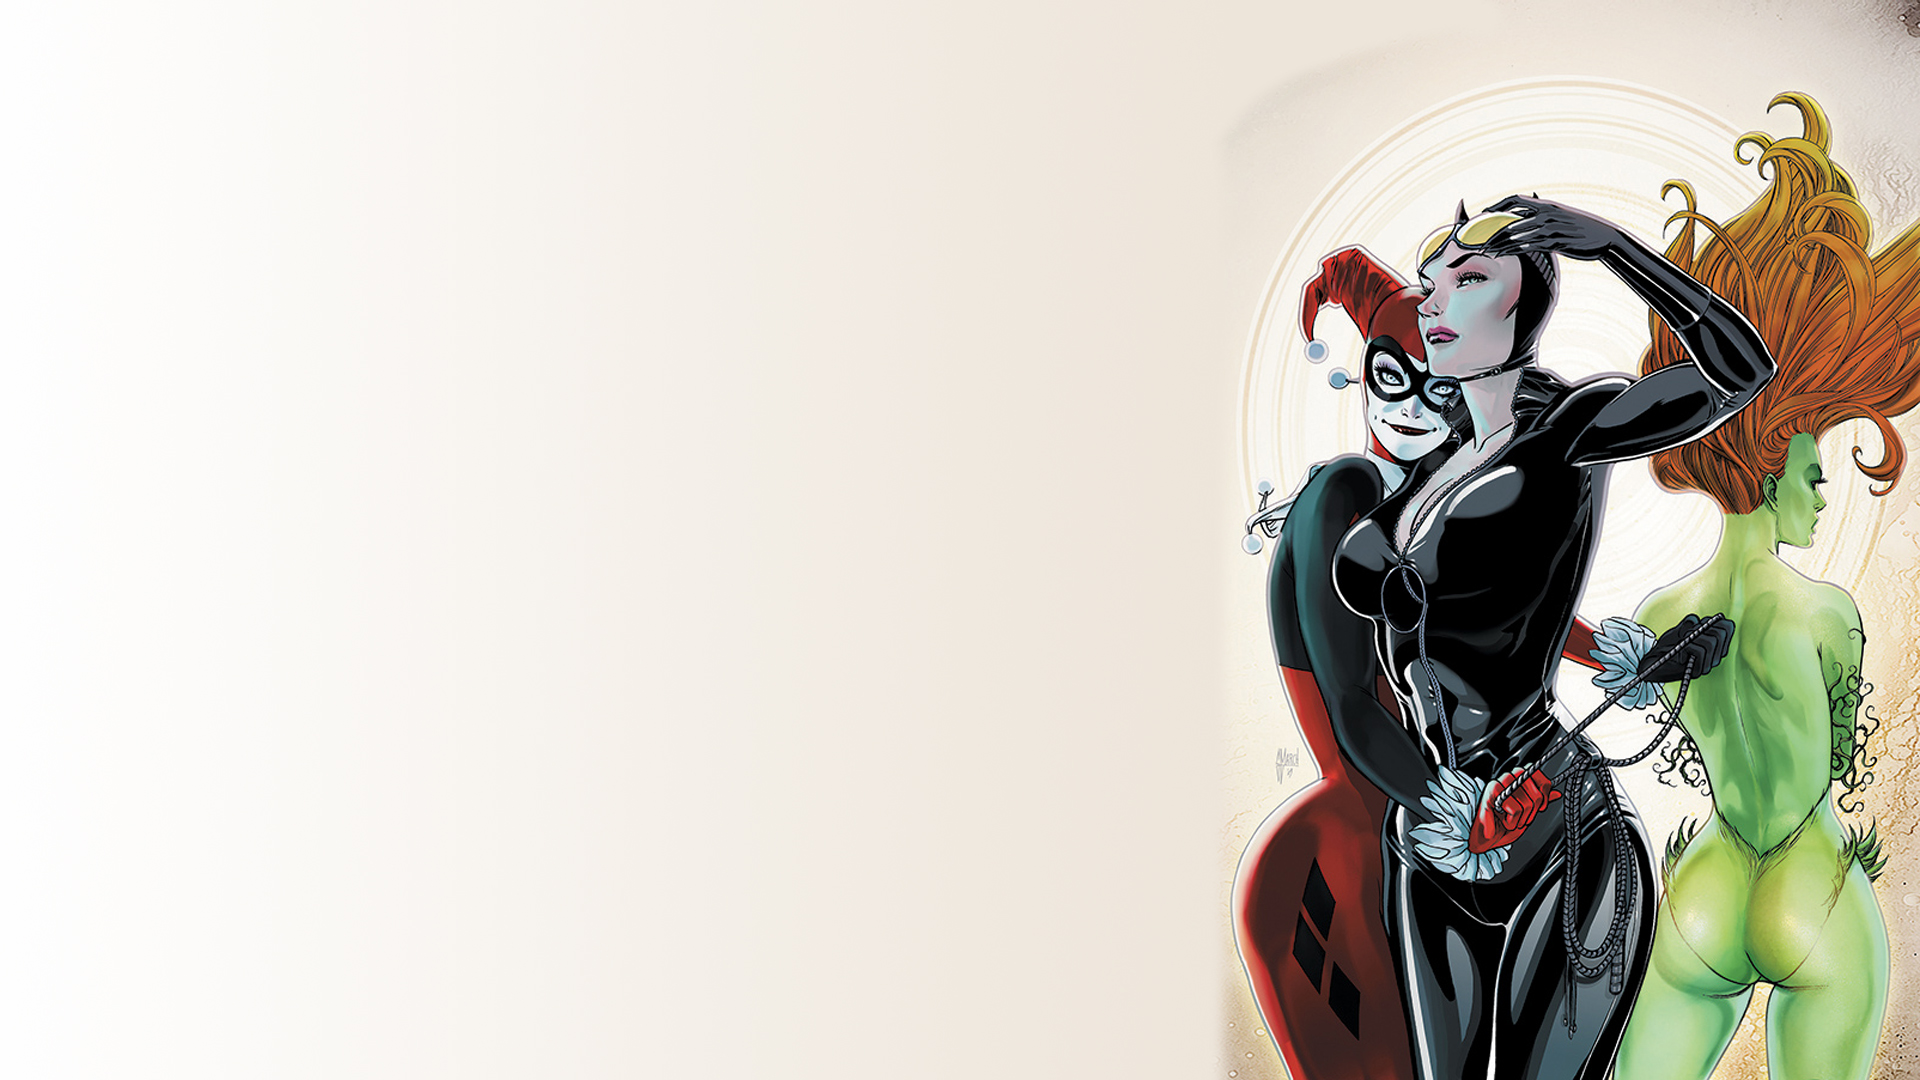 Dc Harley Quinn And Poison Ivy 2563008 Hd Wallpaper